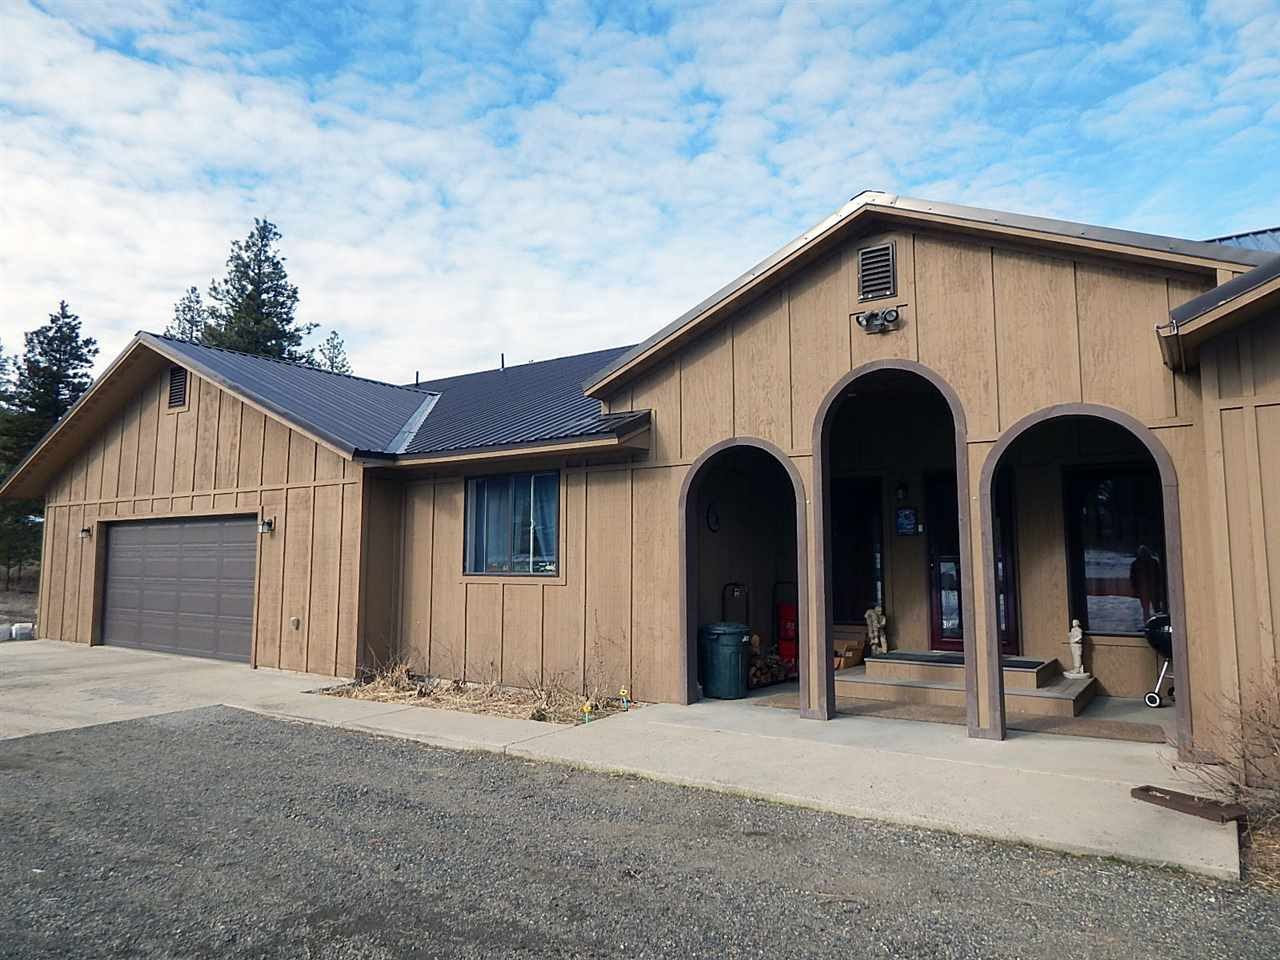 Single Family Home for Sale at 31285 E Ruffed Grouse Drive 31285 E Ruffed Grouse Drive Davenport, Washington 99122 United States